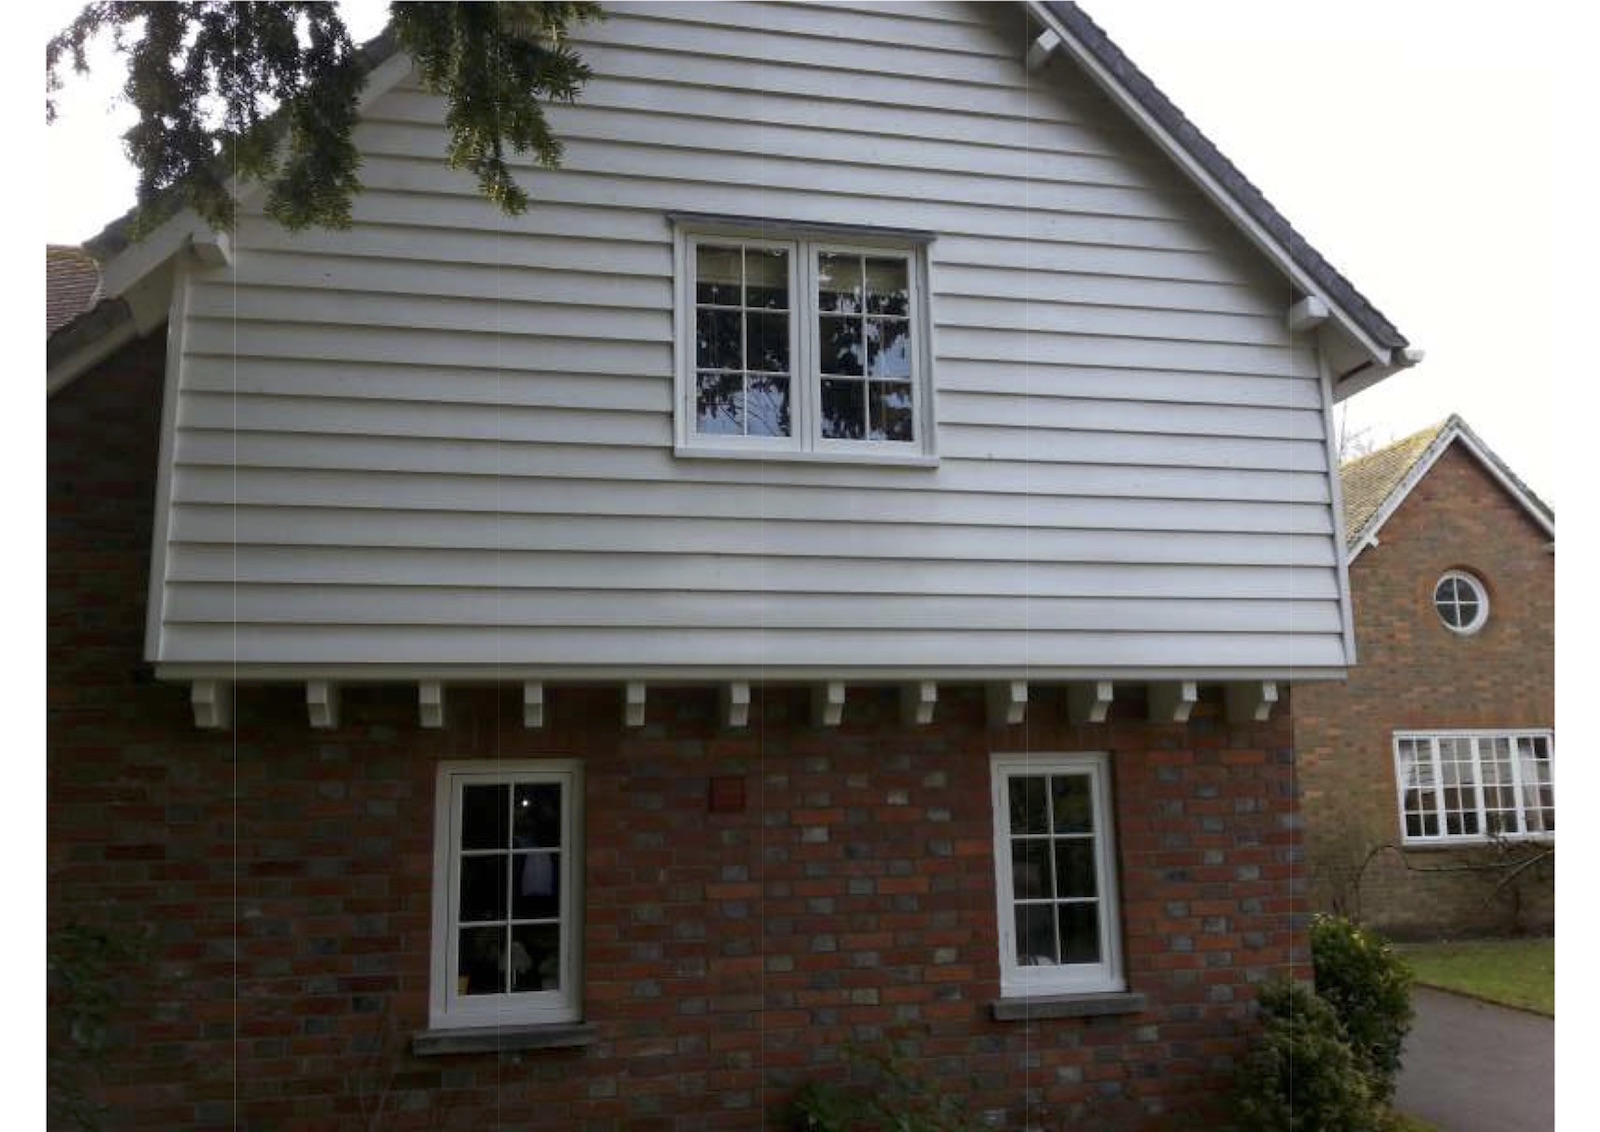 Timber look uPVC windows really worked in this Kent home - DWL